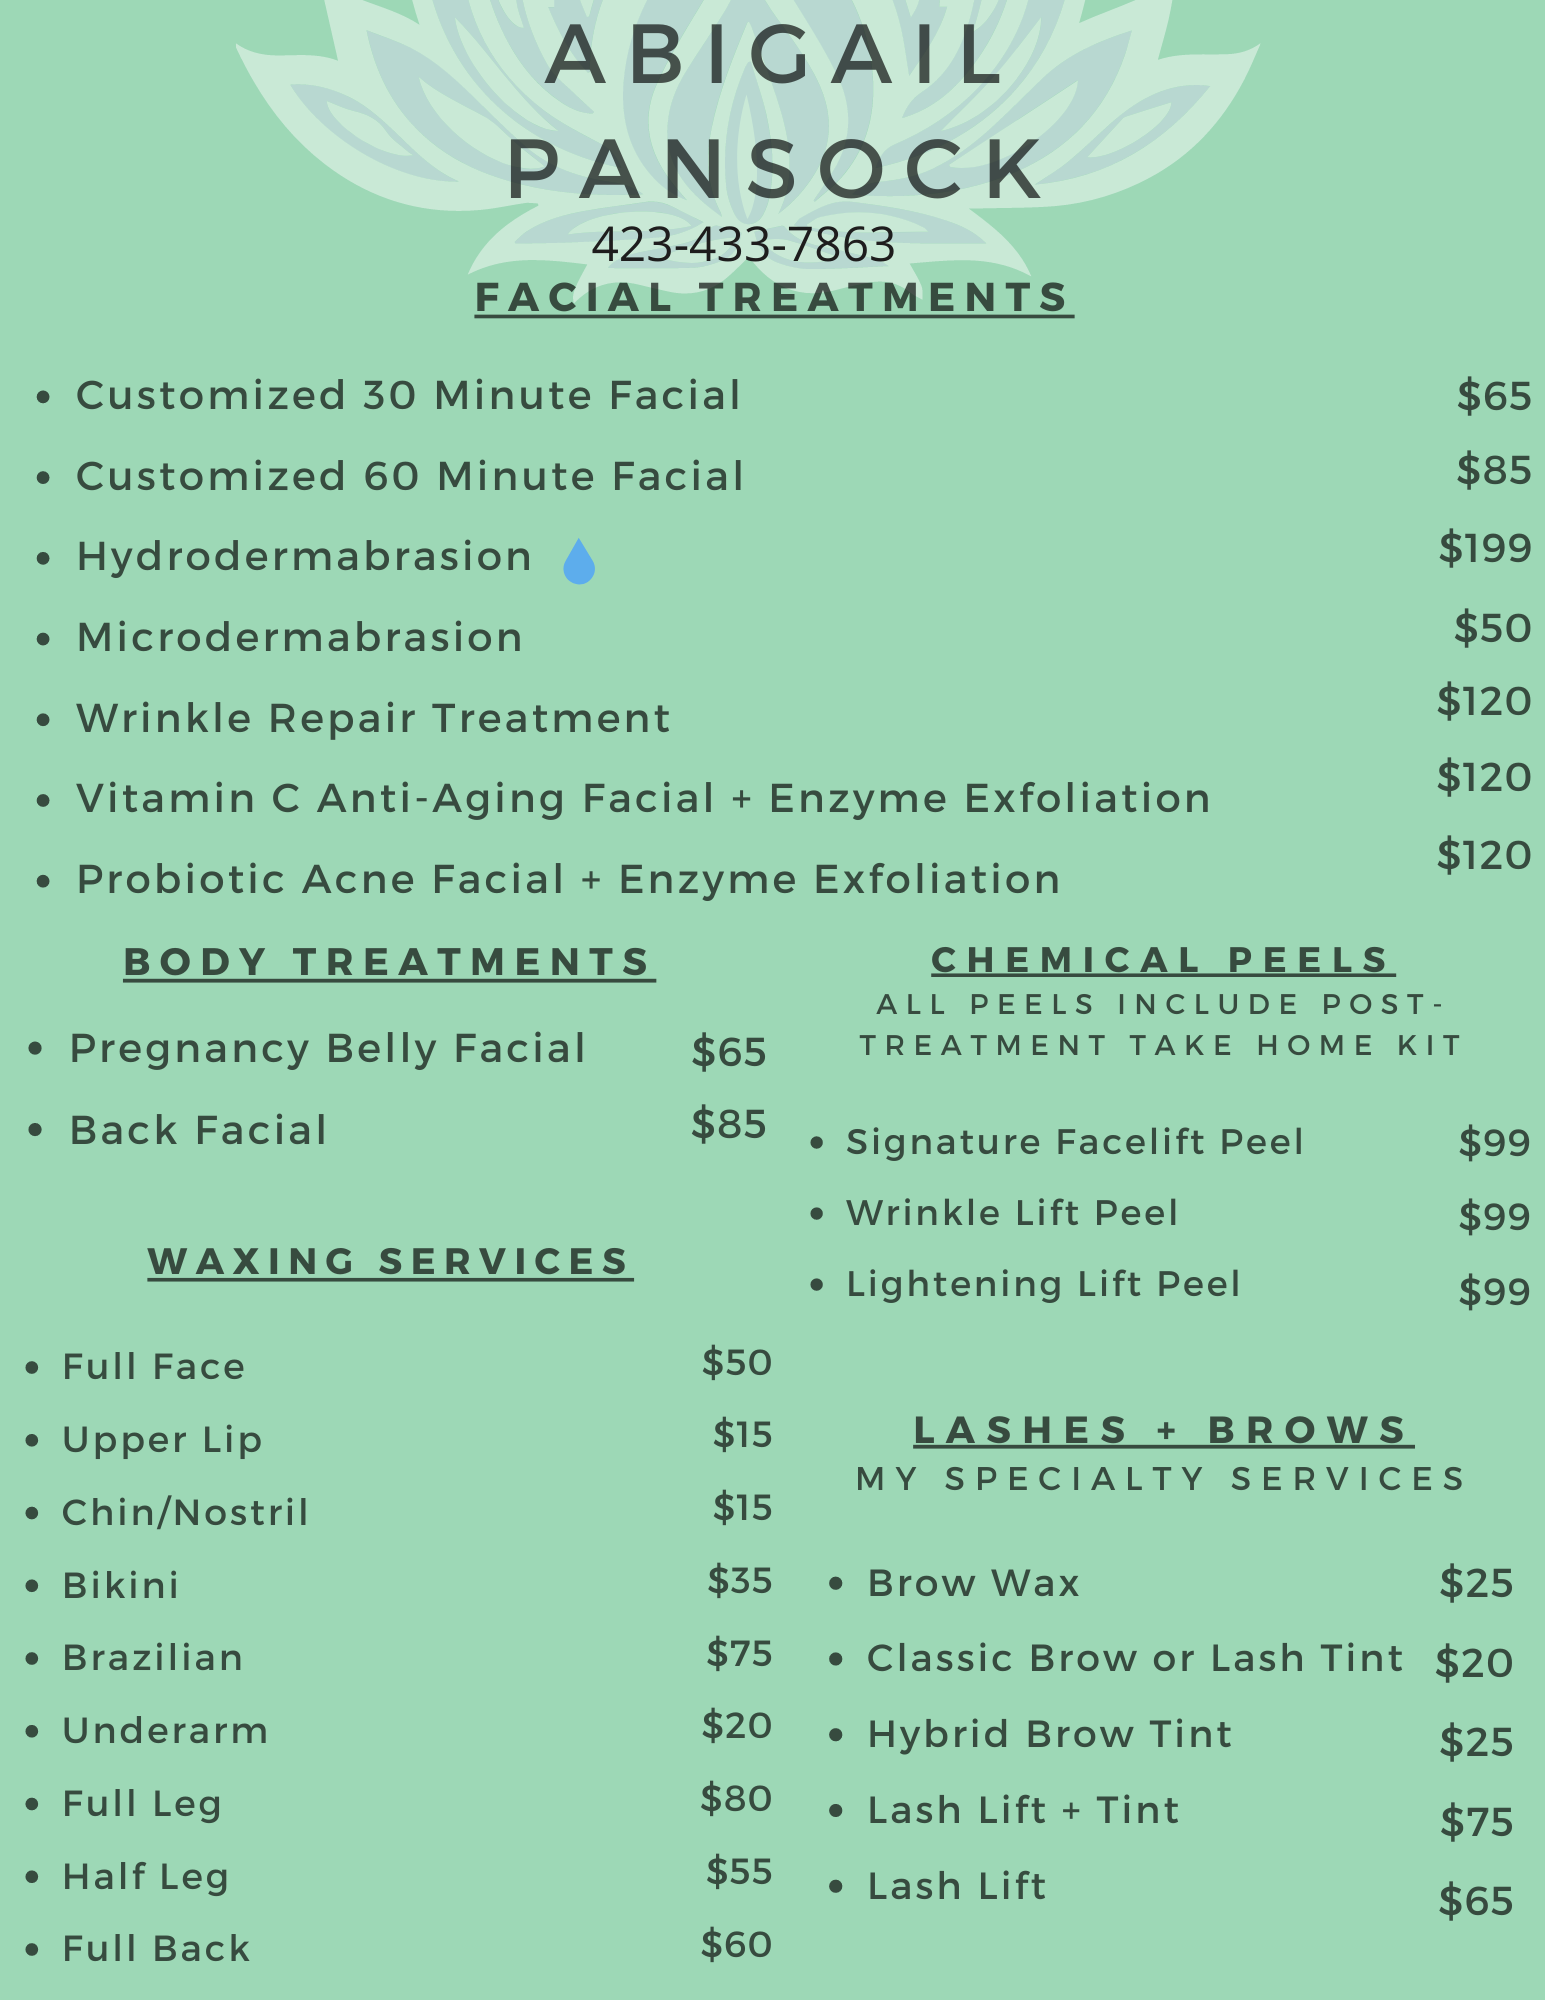 Abigail Pansock aesthetic services updated